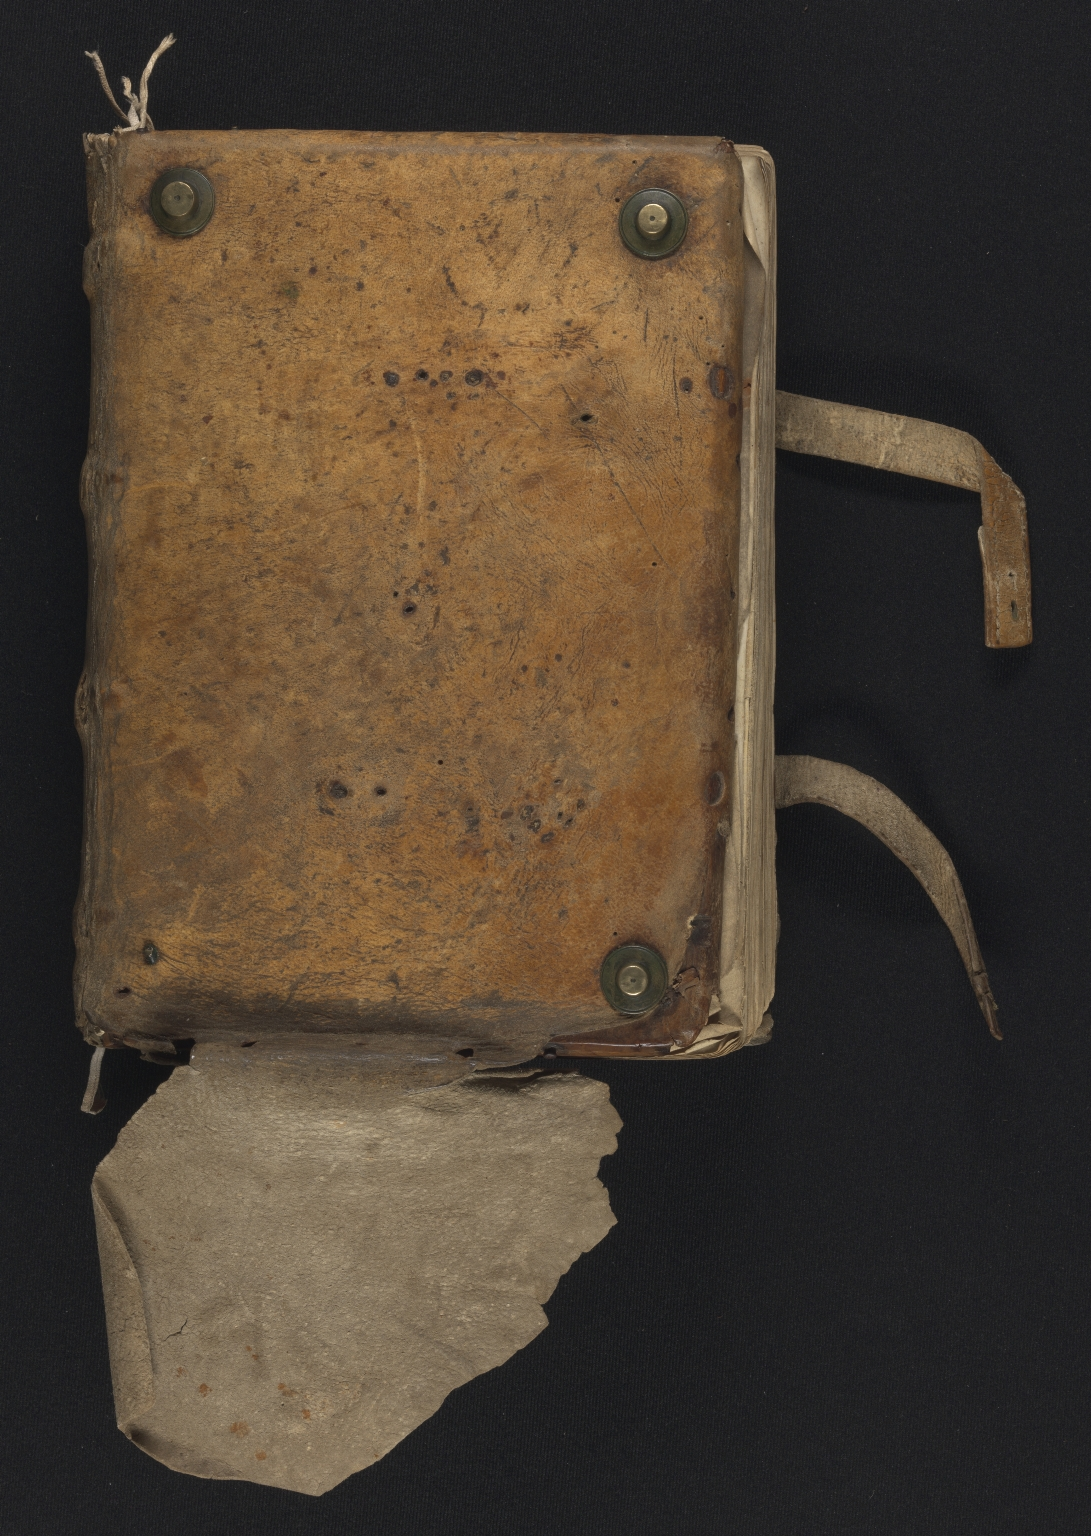 MS 006, girdle binding